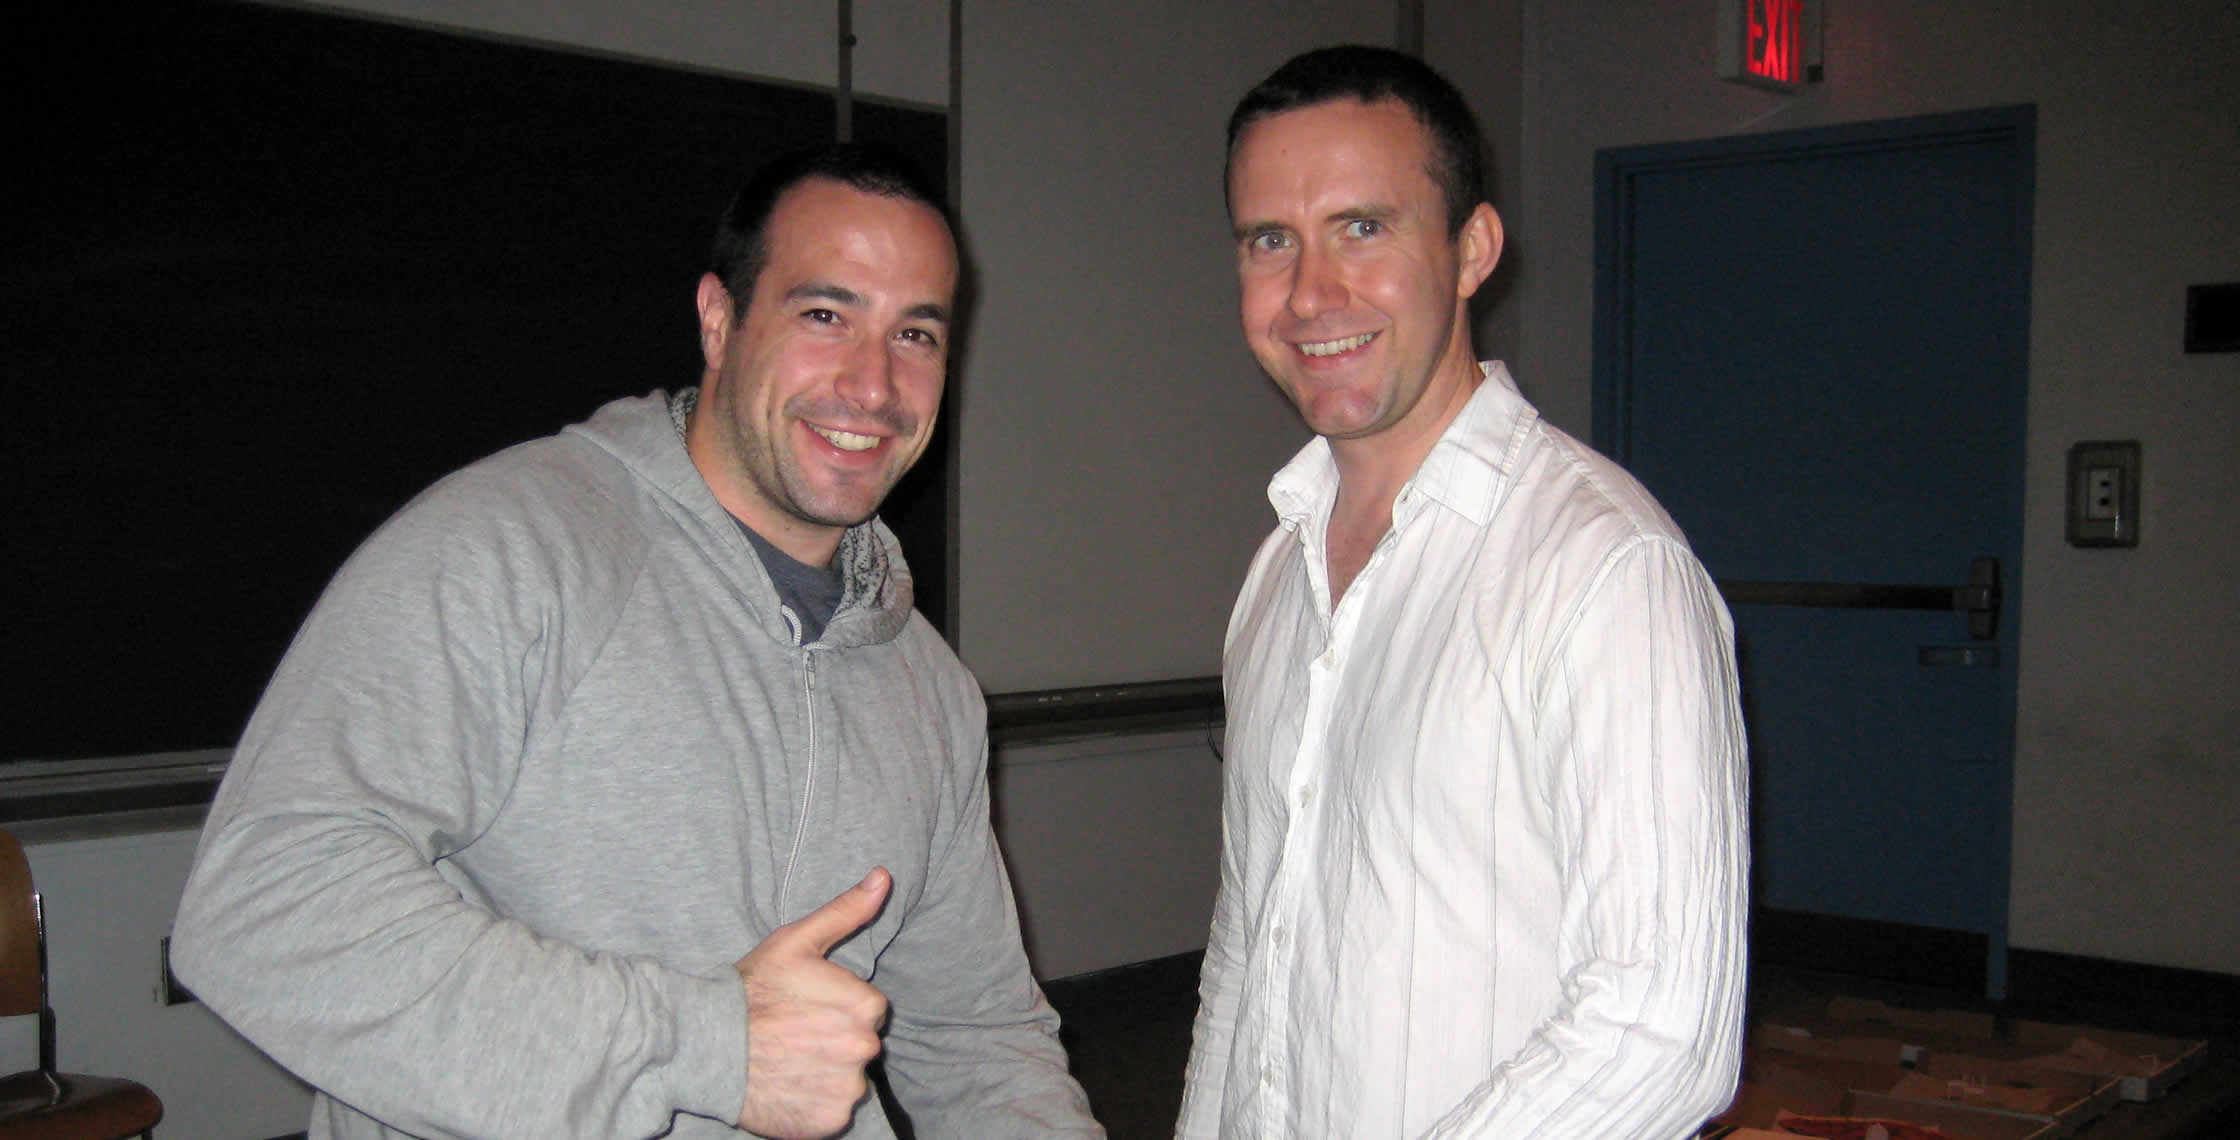 Ben Nadel at the New York ColdFusion User Group (Sep. 2008) with: Peter Bell